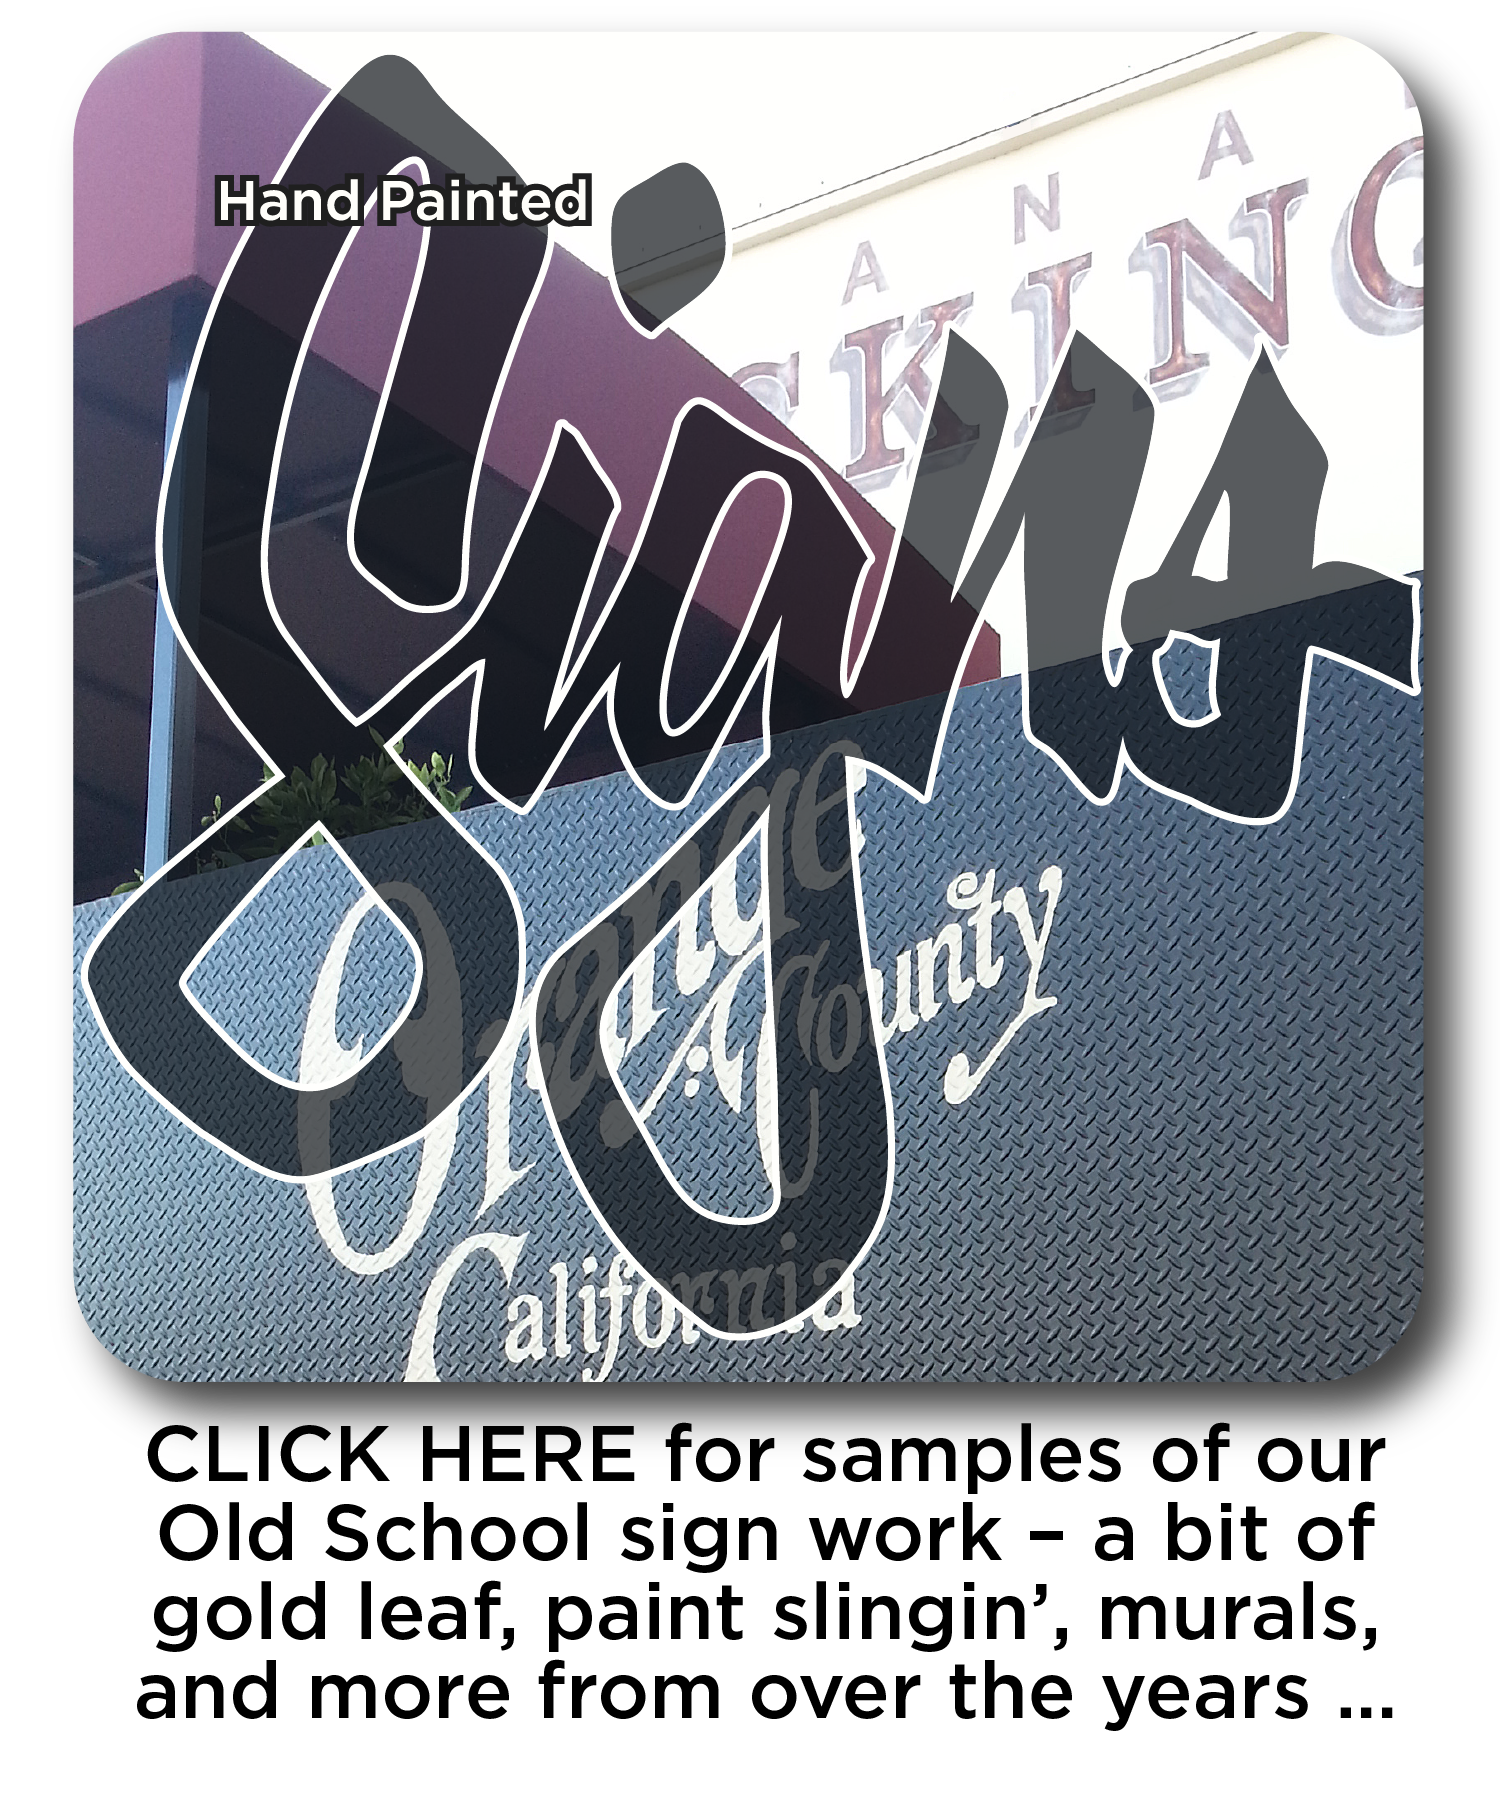 CLICK HERE for samples of our Old School sign work – a bit of gold leaf, paint slingin', murals, and more from over the years …